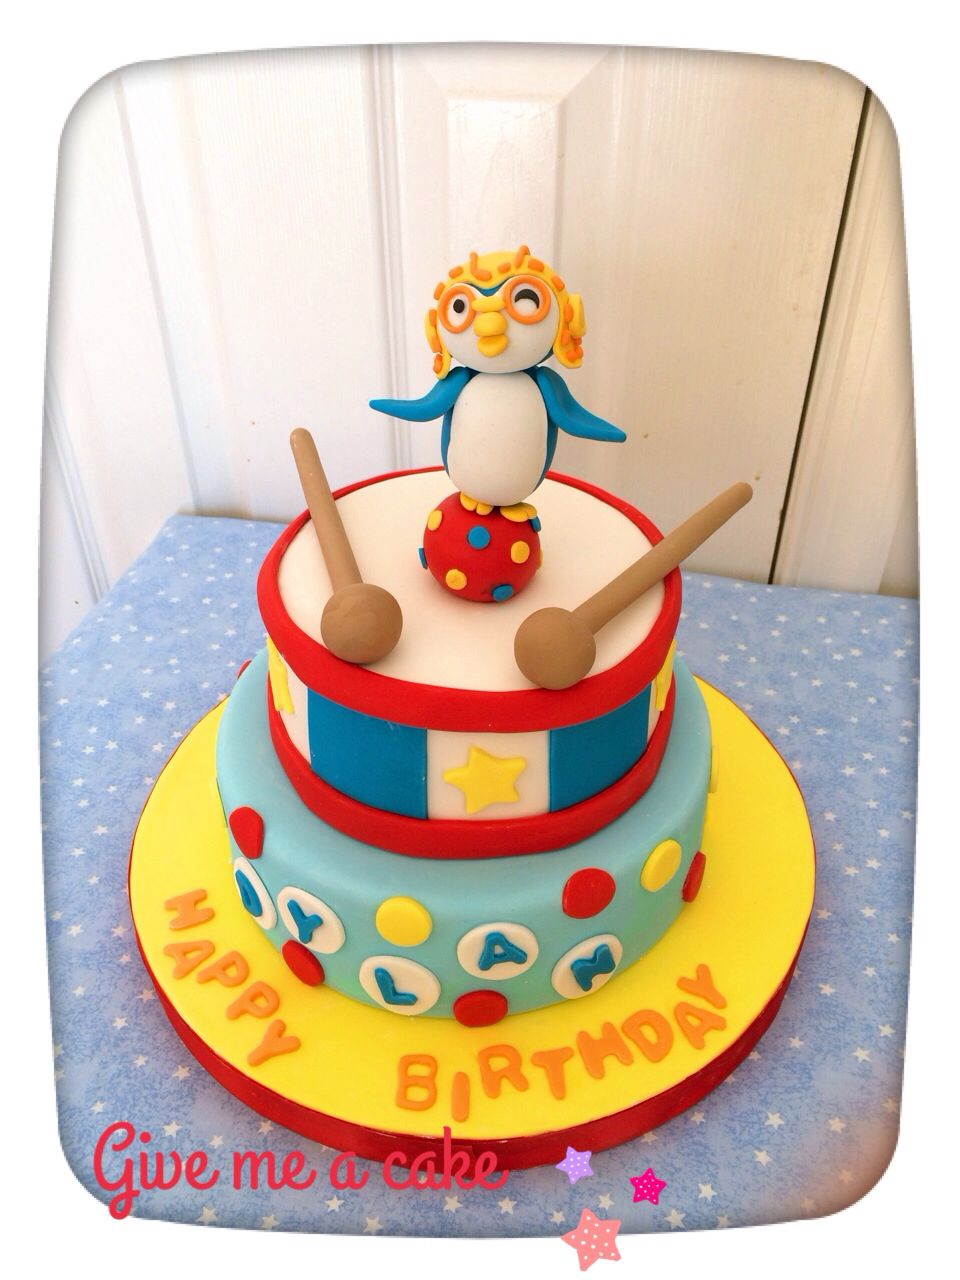 Pororo Kids Birthday Cake By Give Me A Customized At Edison Nj Contact Email Sshennycgmail